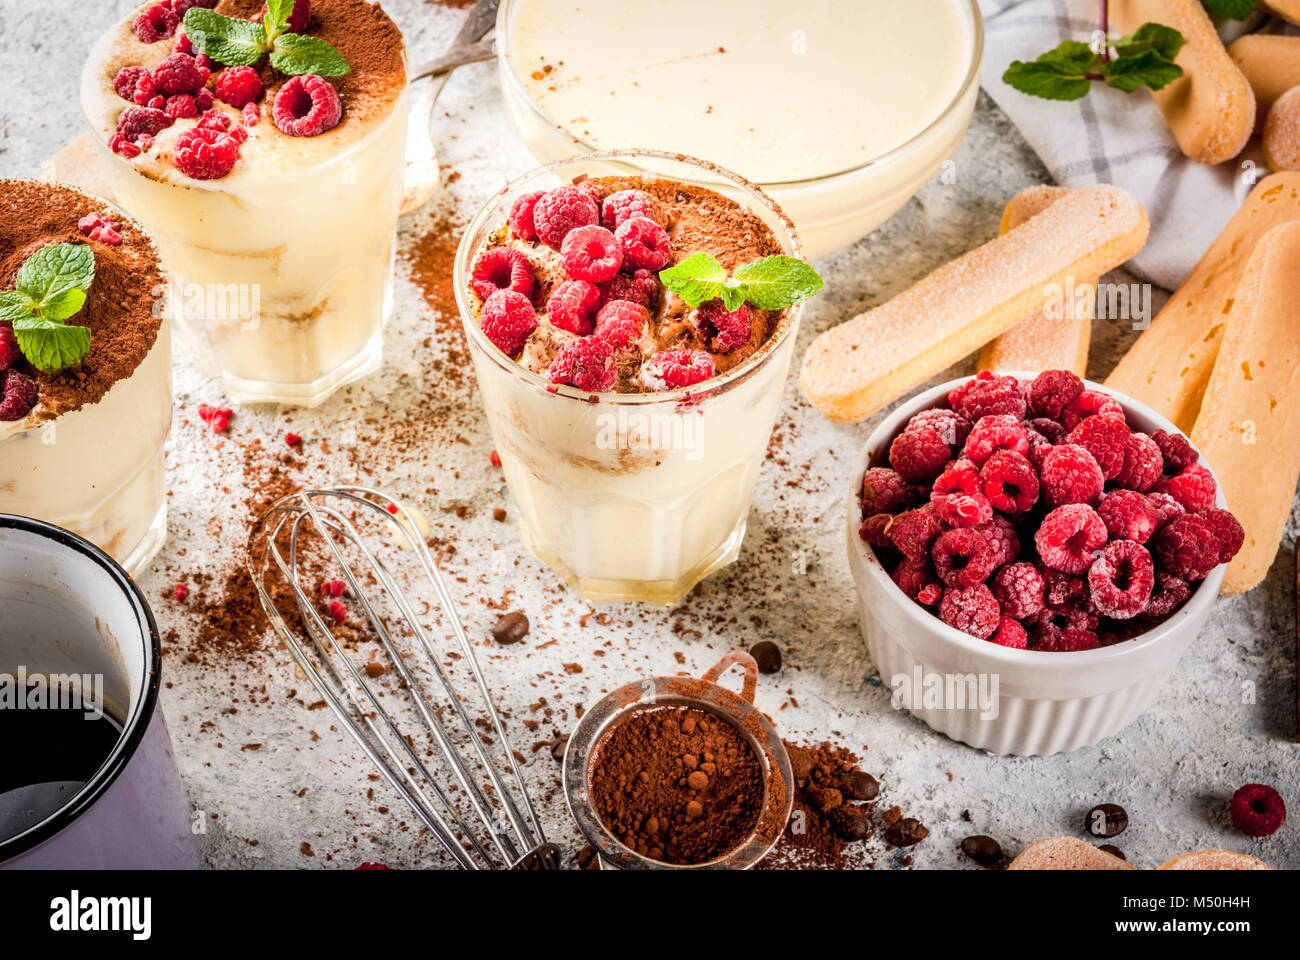 Cooking Italian food dessert Tiramisu, with all the necessary ingredients cocoa, coffee, mascarpone cheese, mint - Stock Image